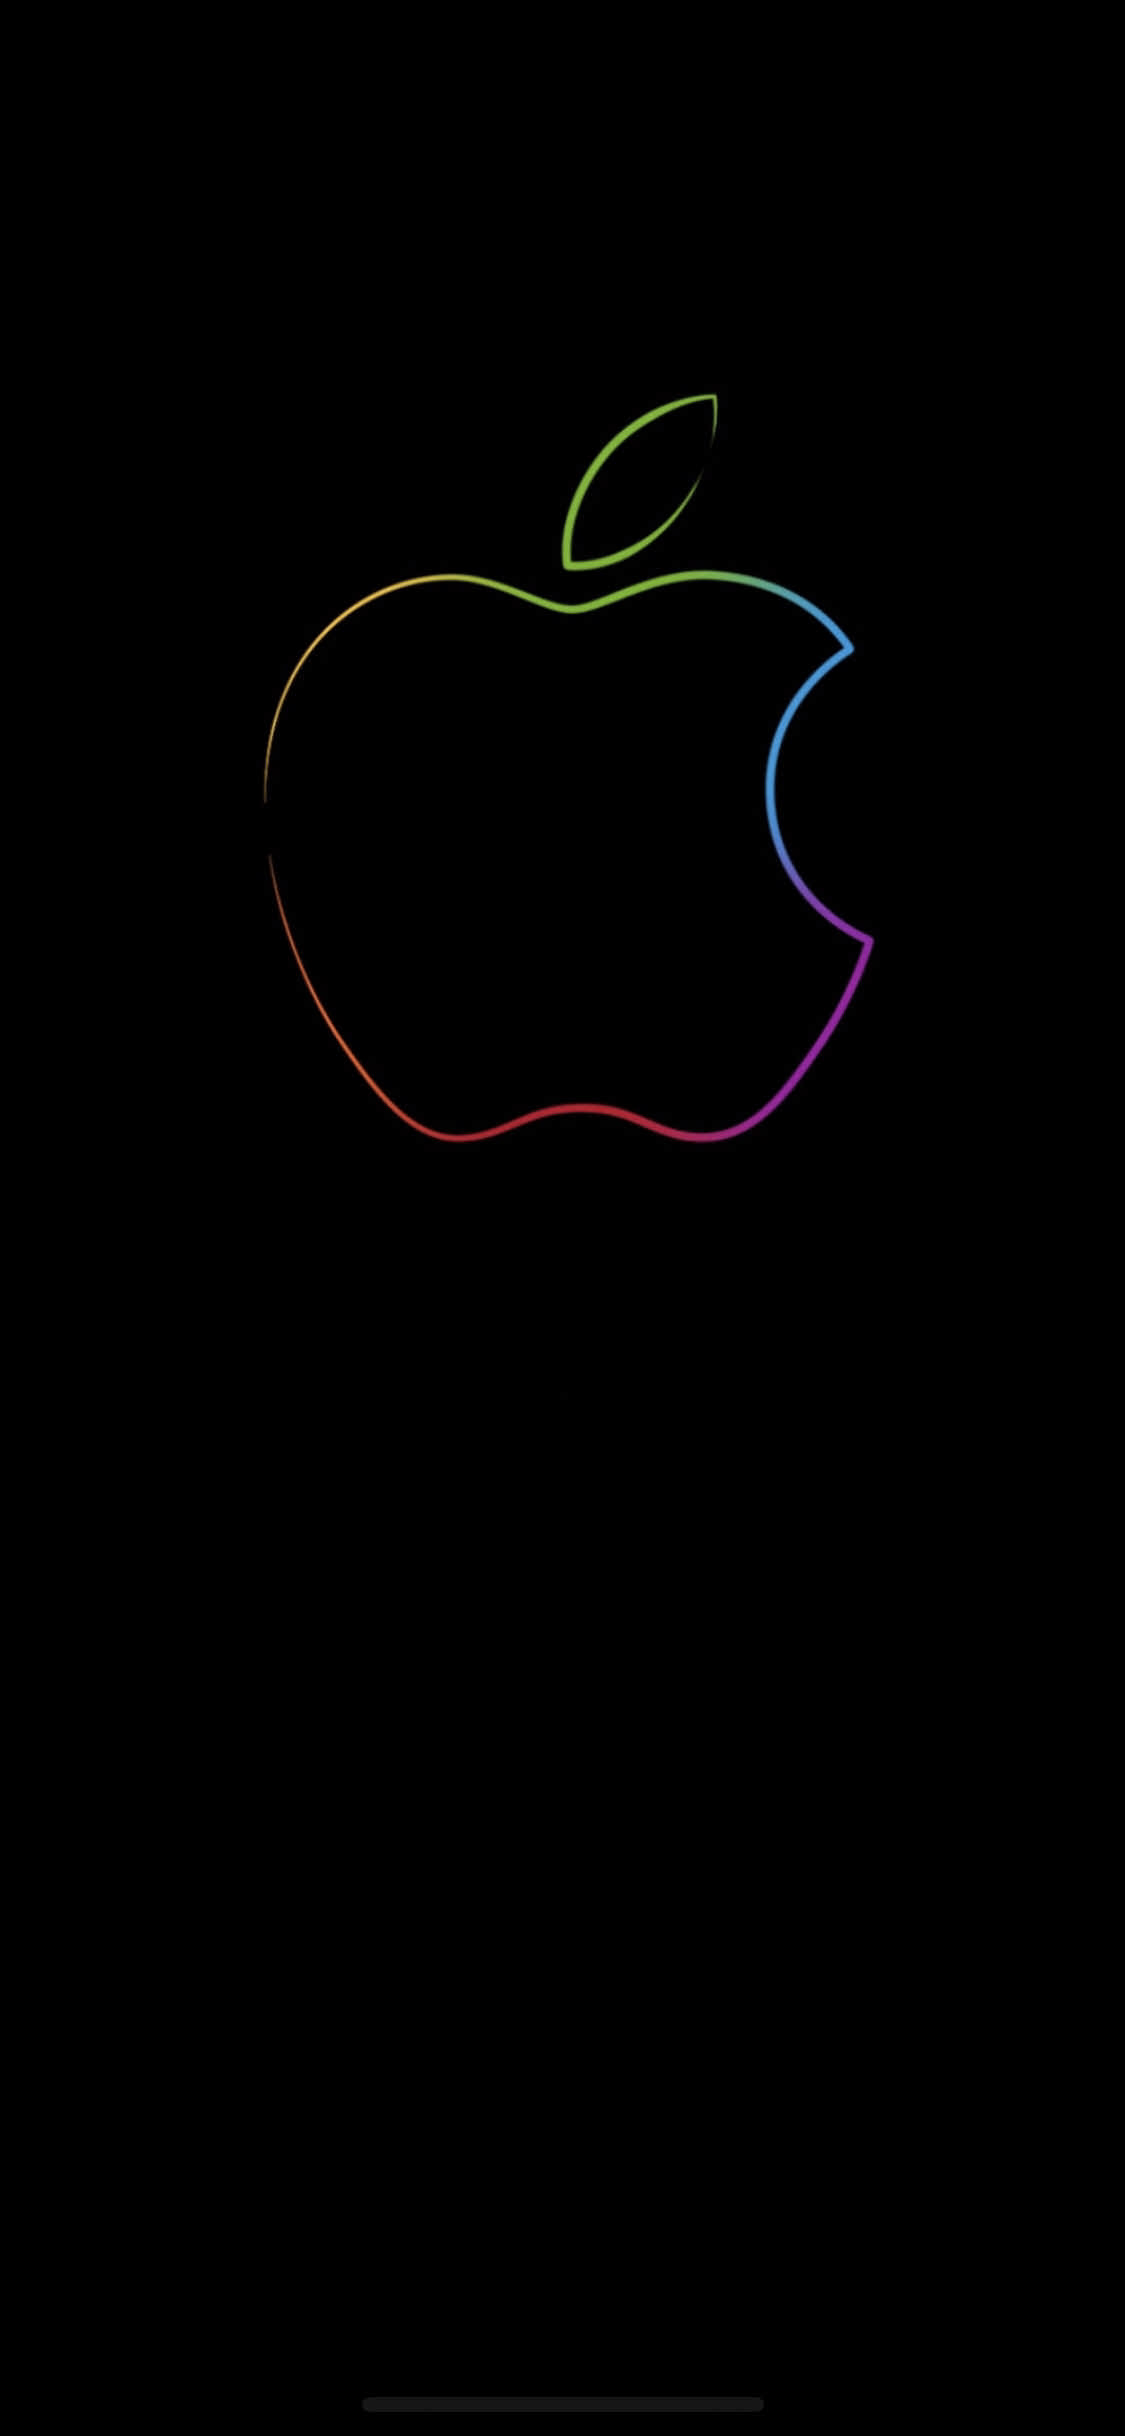 Anyone Have A Border Wallpaper For The Watch Like This Border Line Wallpaper For Iphone X 61460 Hd Wallpaper Backgrounds Download